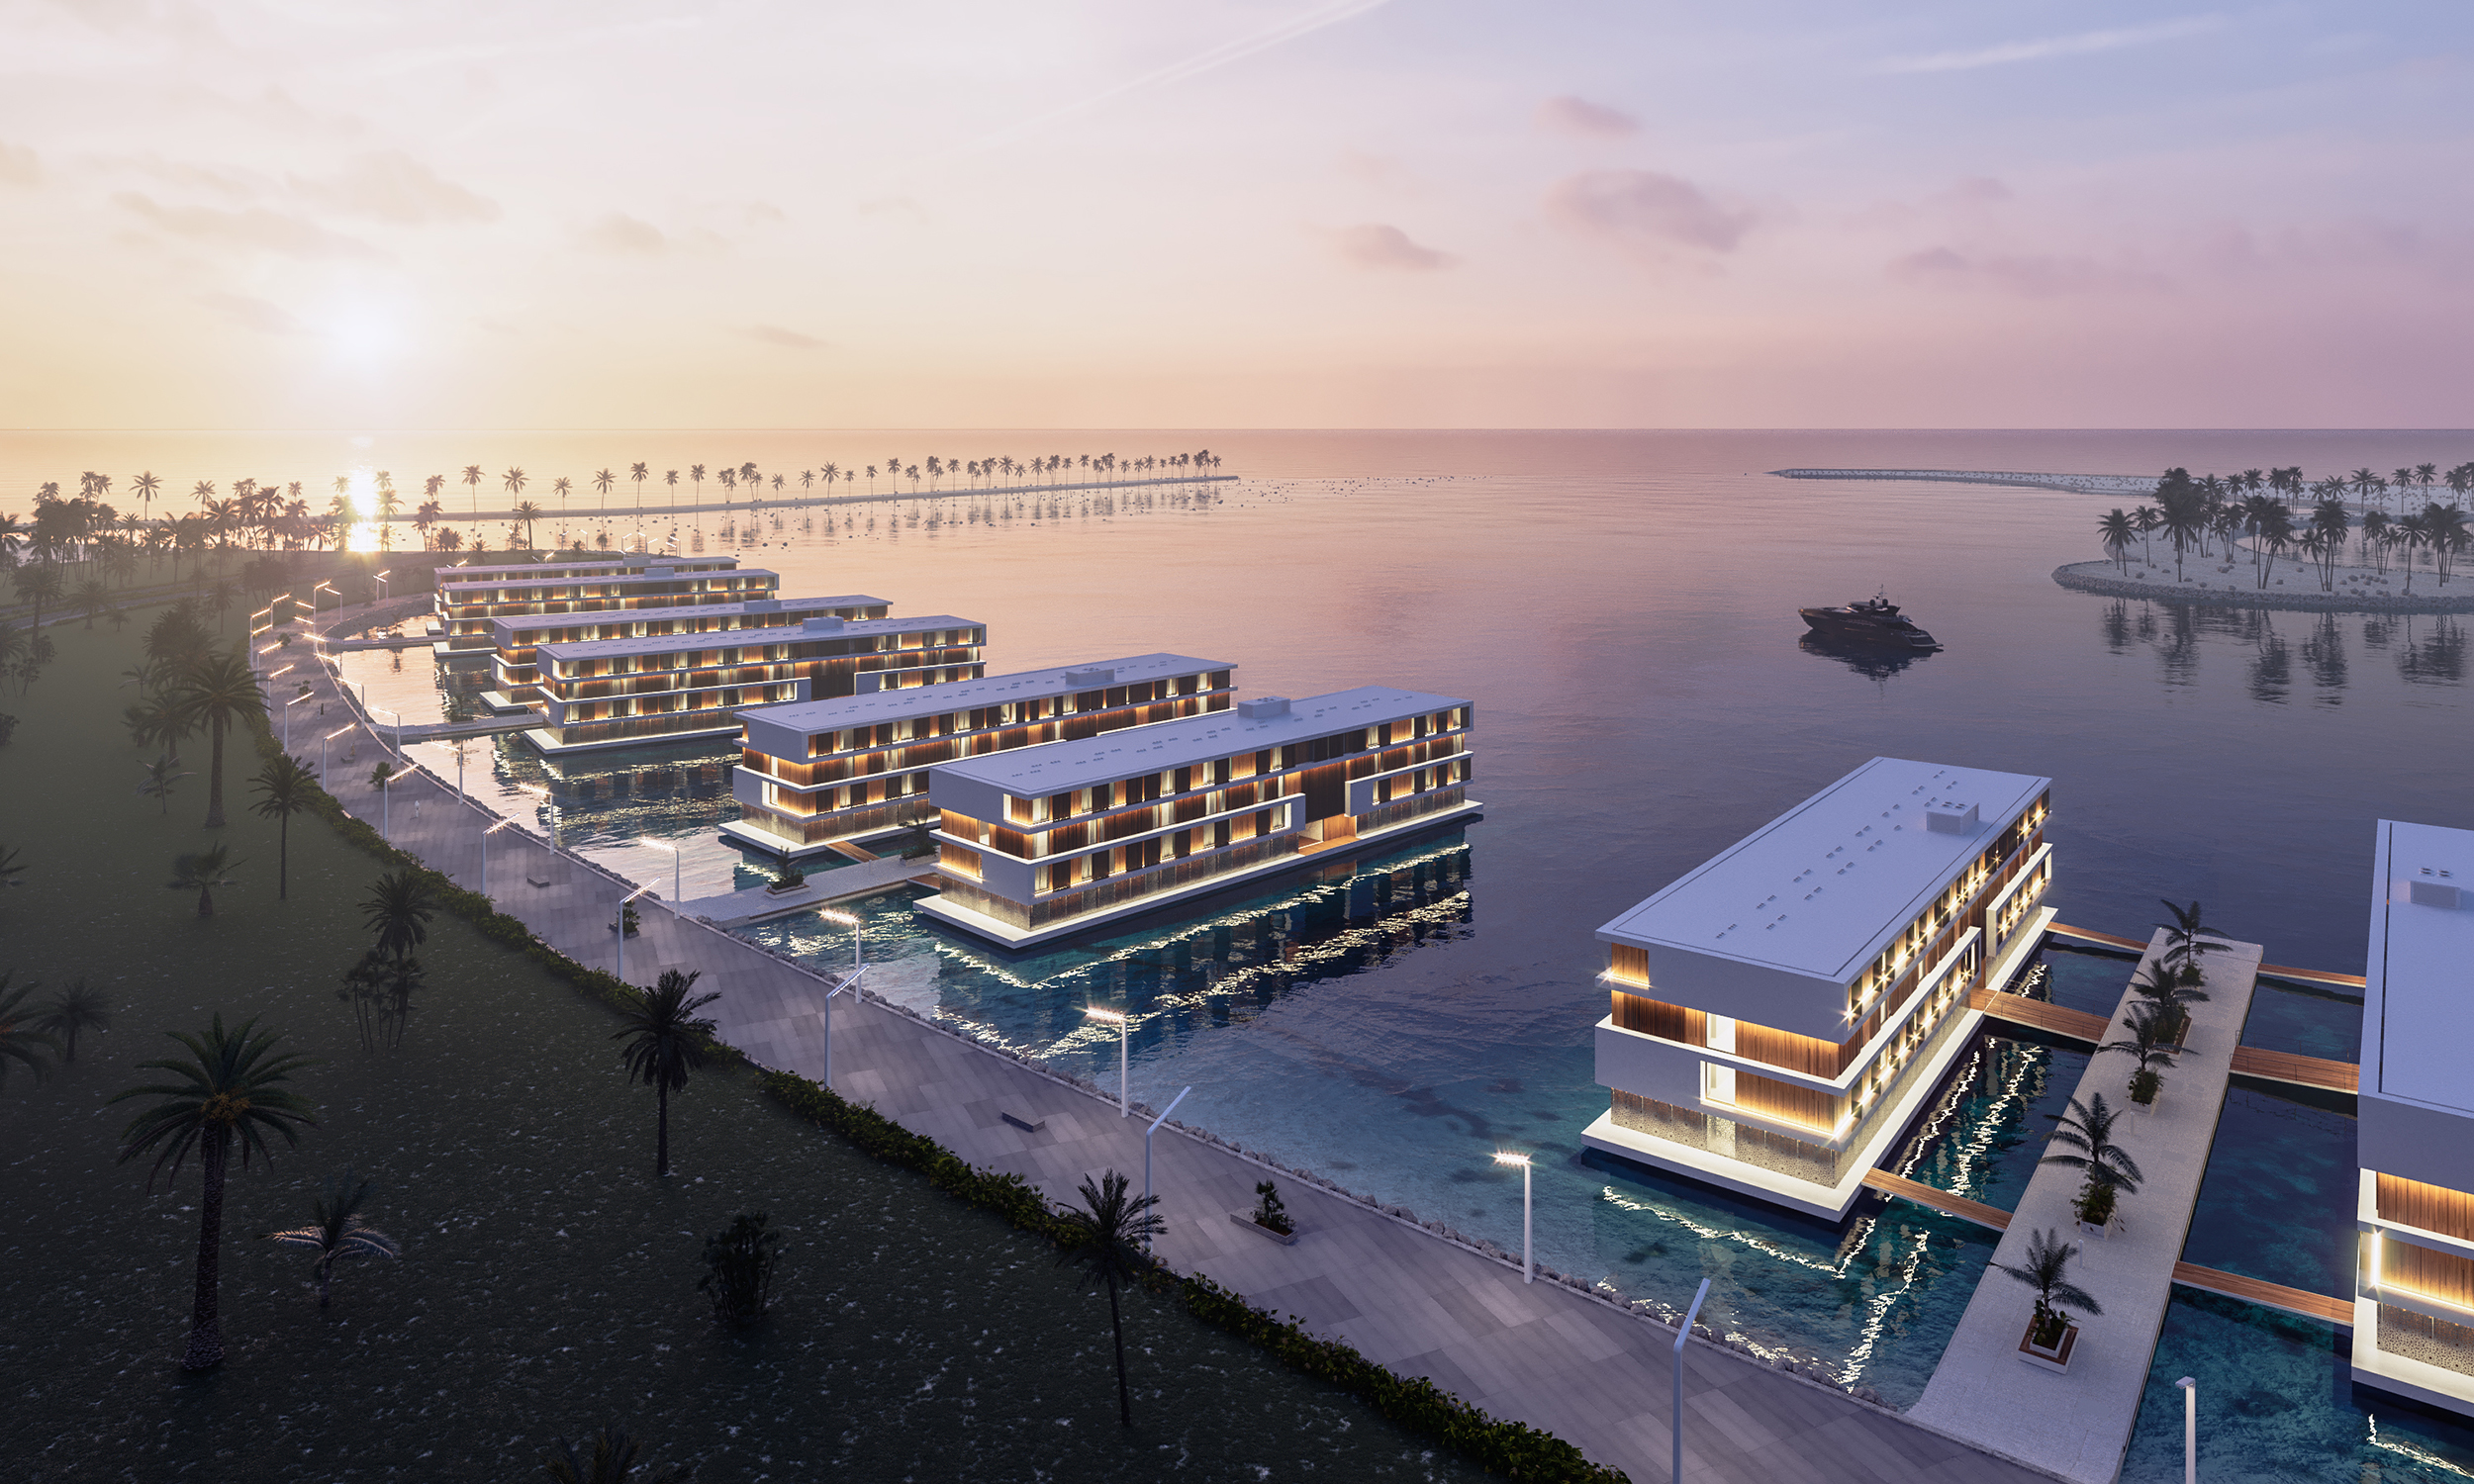 Floating Luxury Hotels Coming to Qatar for FIFA World Cup 2022